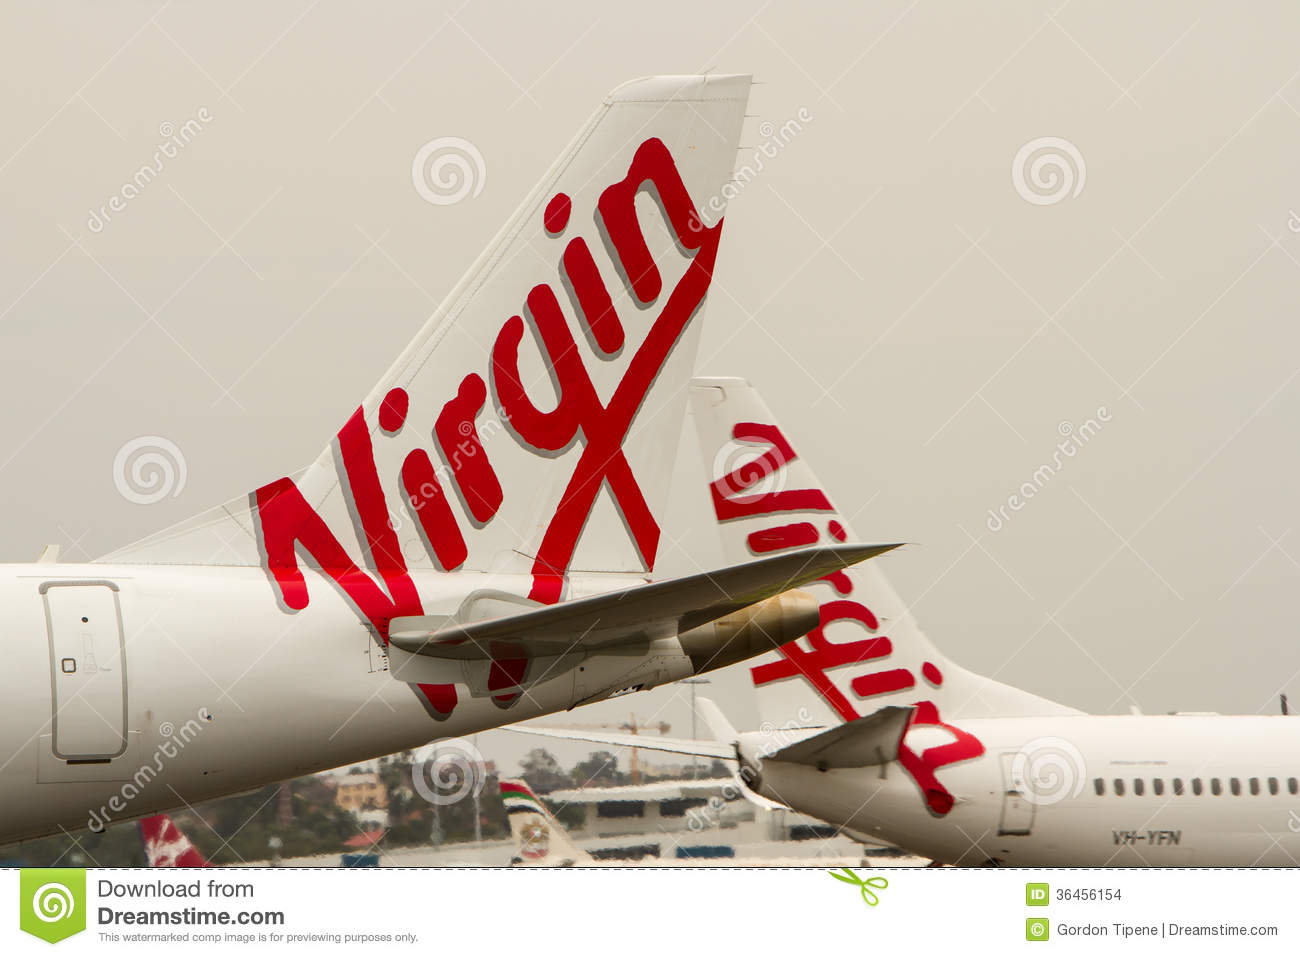 Virgin Australia Airlines logos on aircraft.